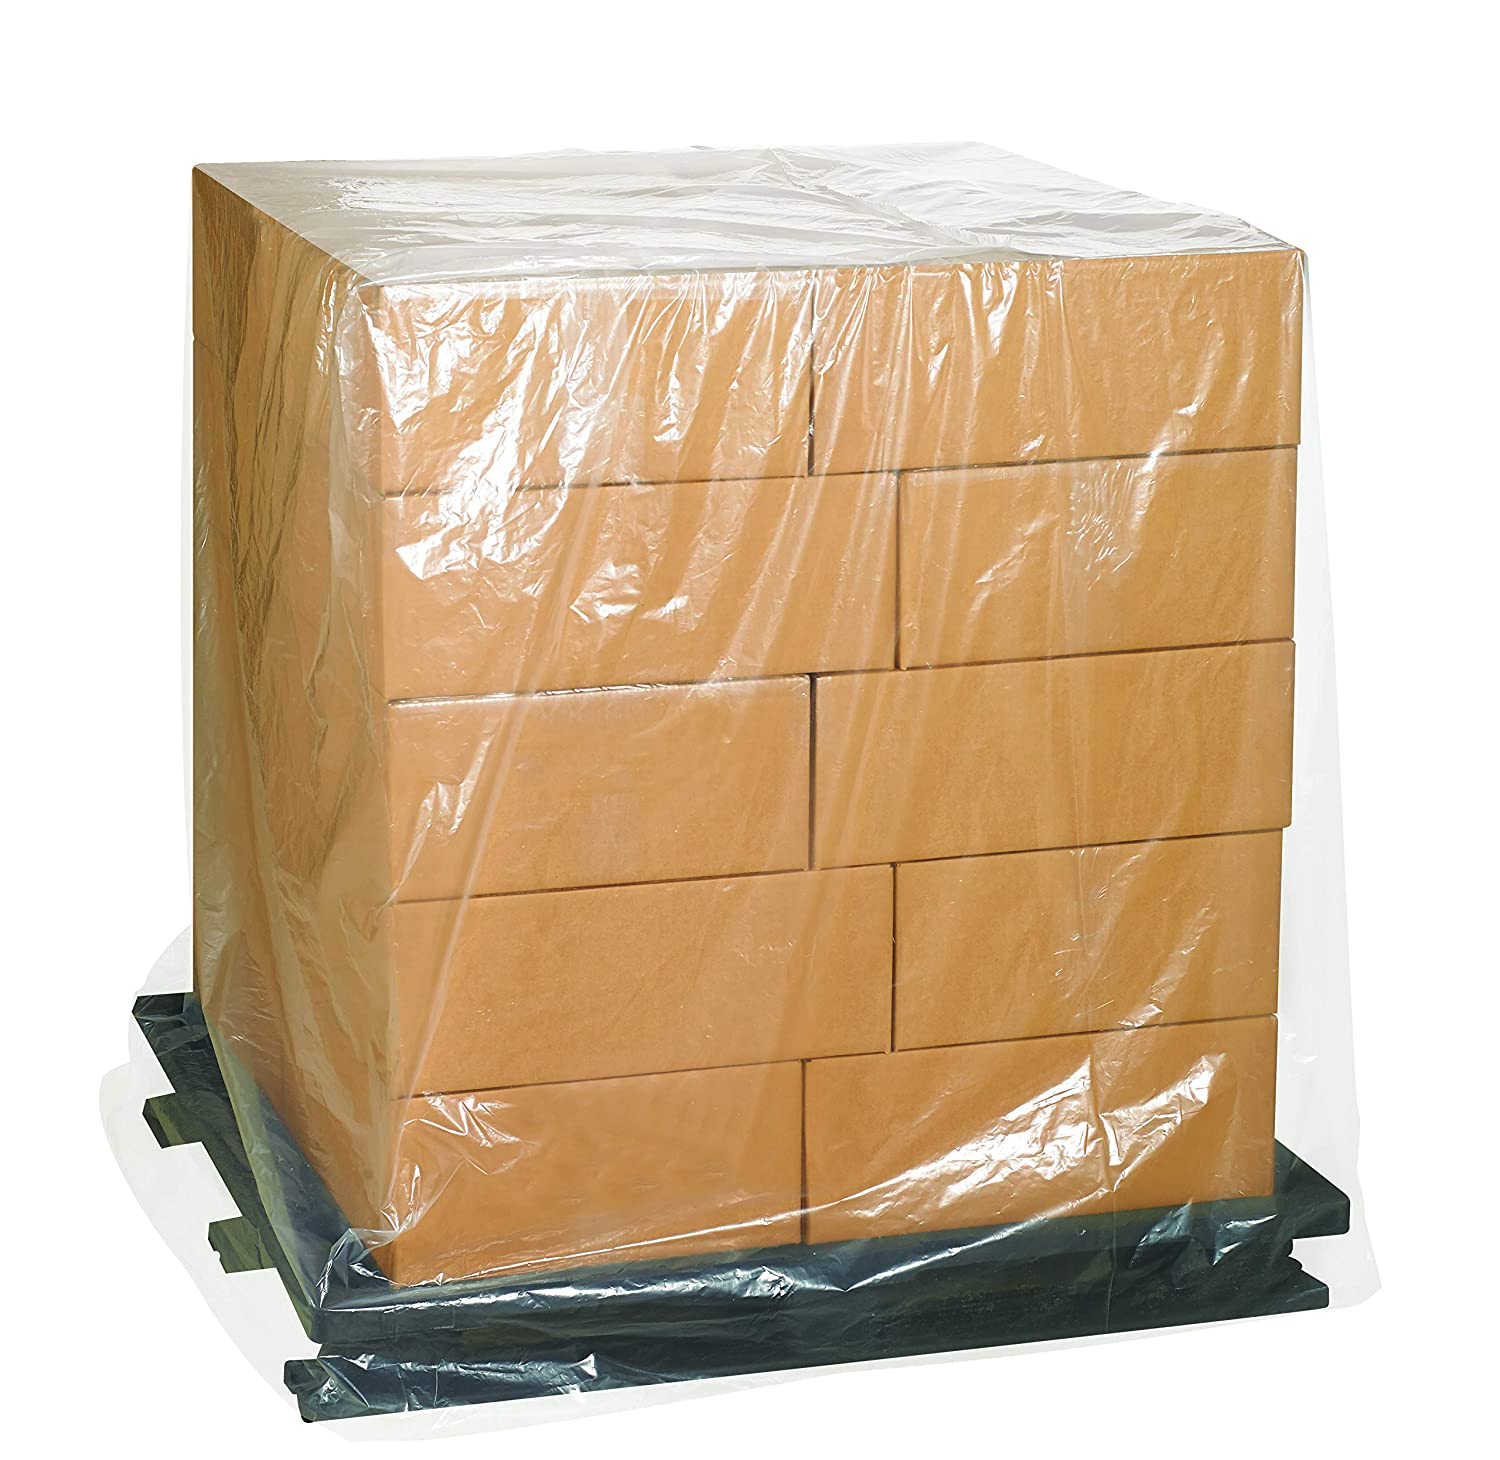 1 Mil 48 x 46 x 72 Clear Aviditi PC504 Pallet Covers Pack of 100